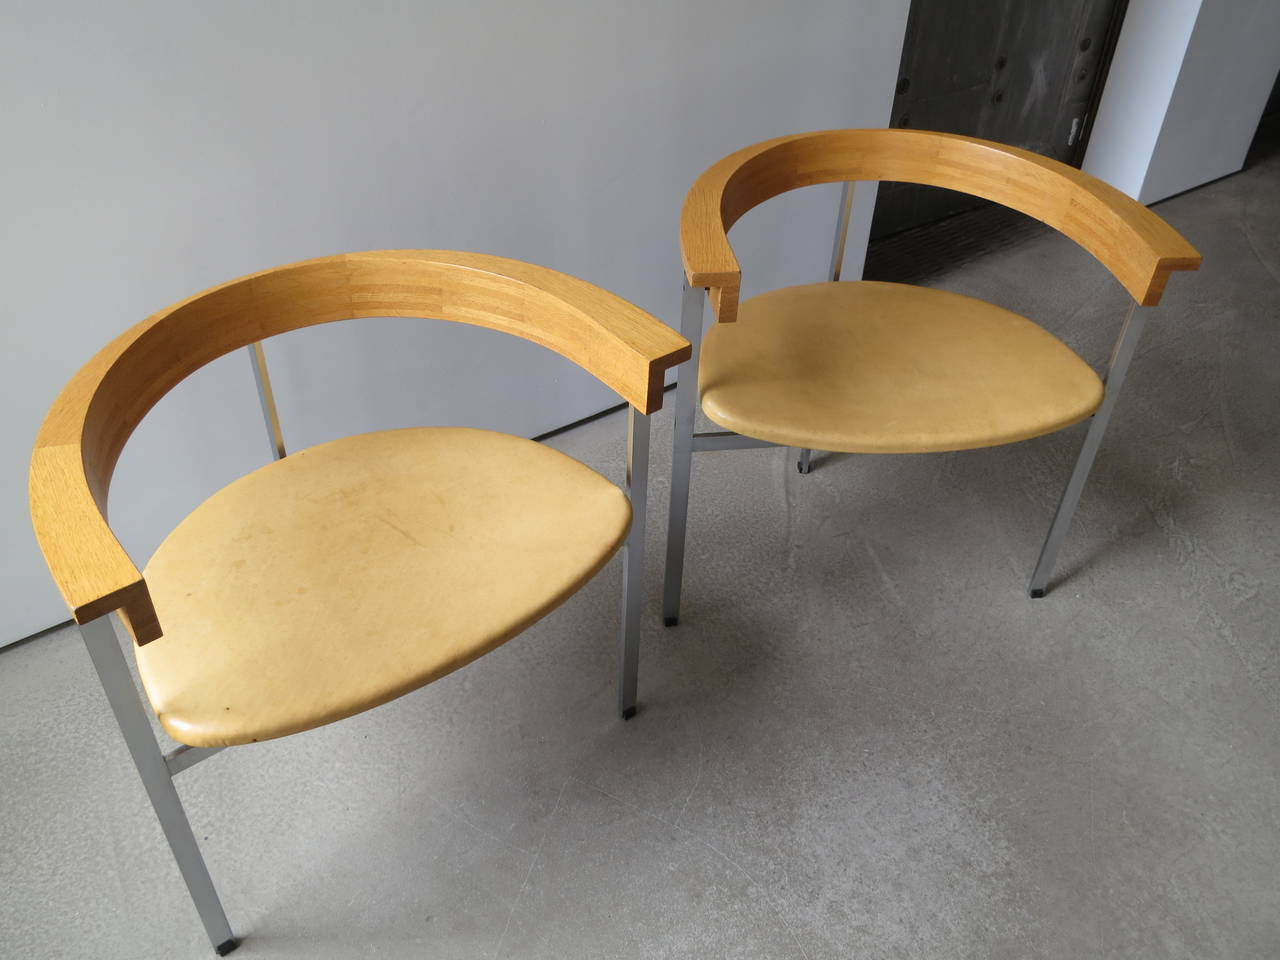 Plated Pair of PK-11 Armchairs by Poul Kjærholm, made by E. Kold Christensen For Sale